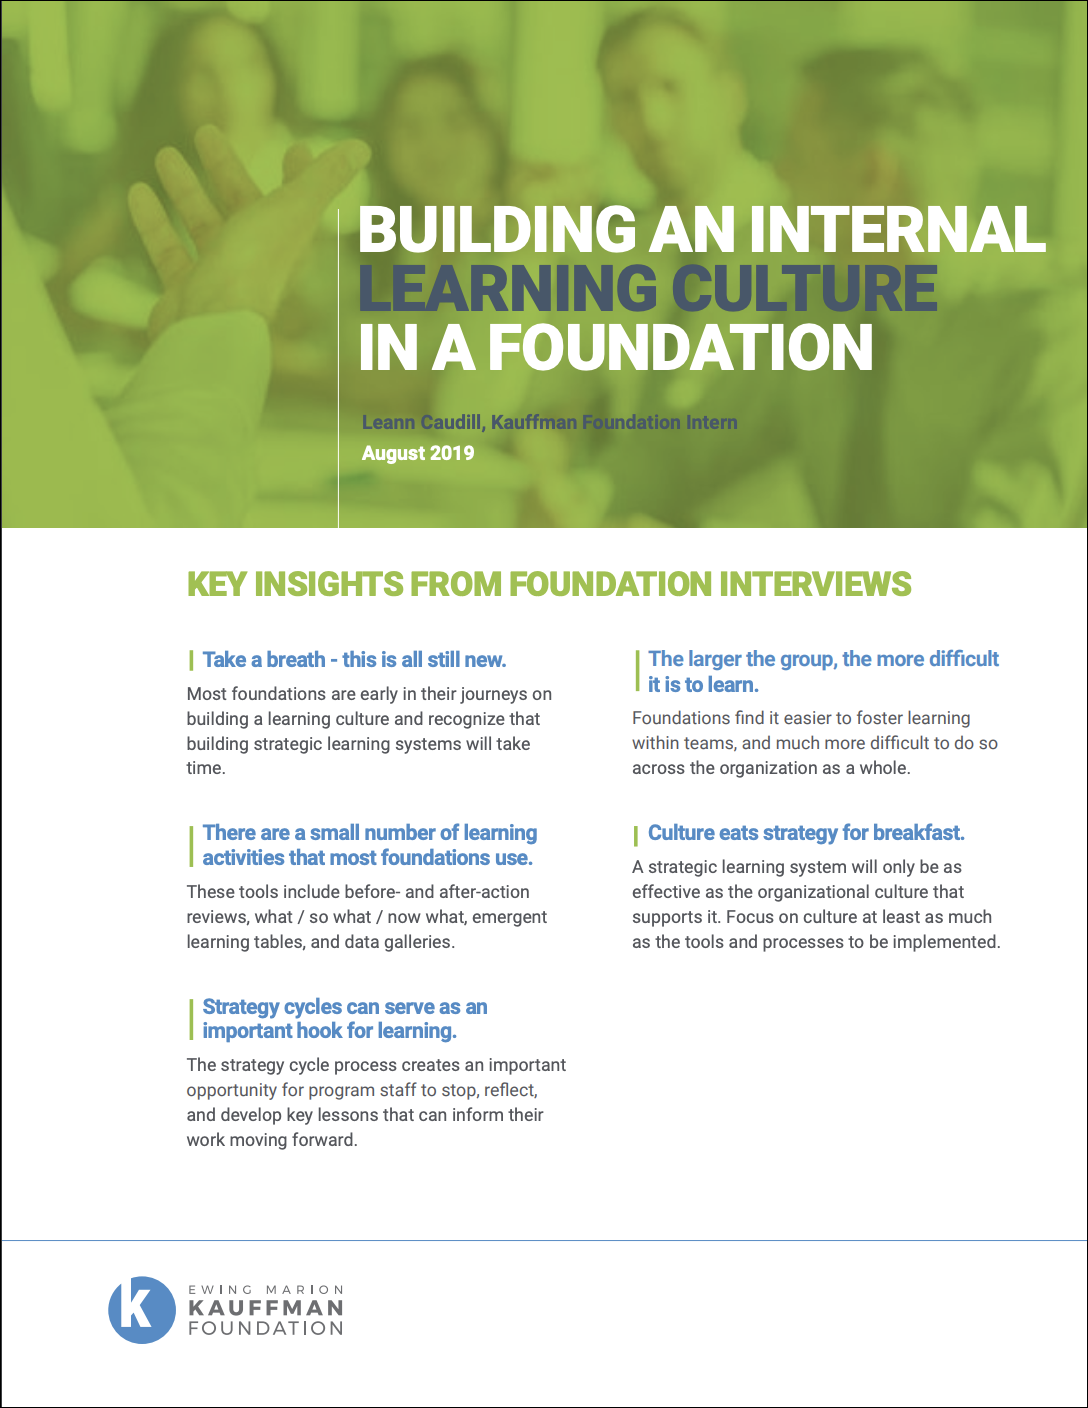 Building an Internal Learning Culture in a Foundation report